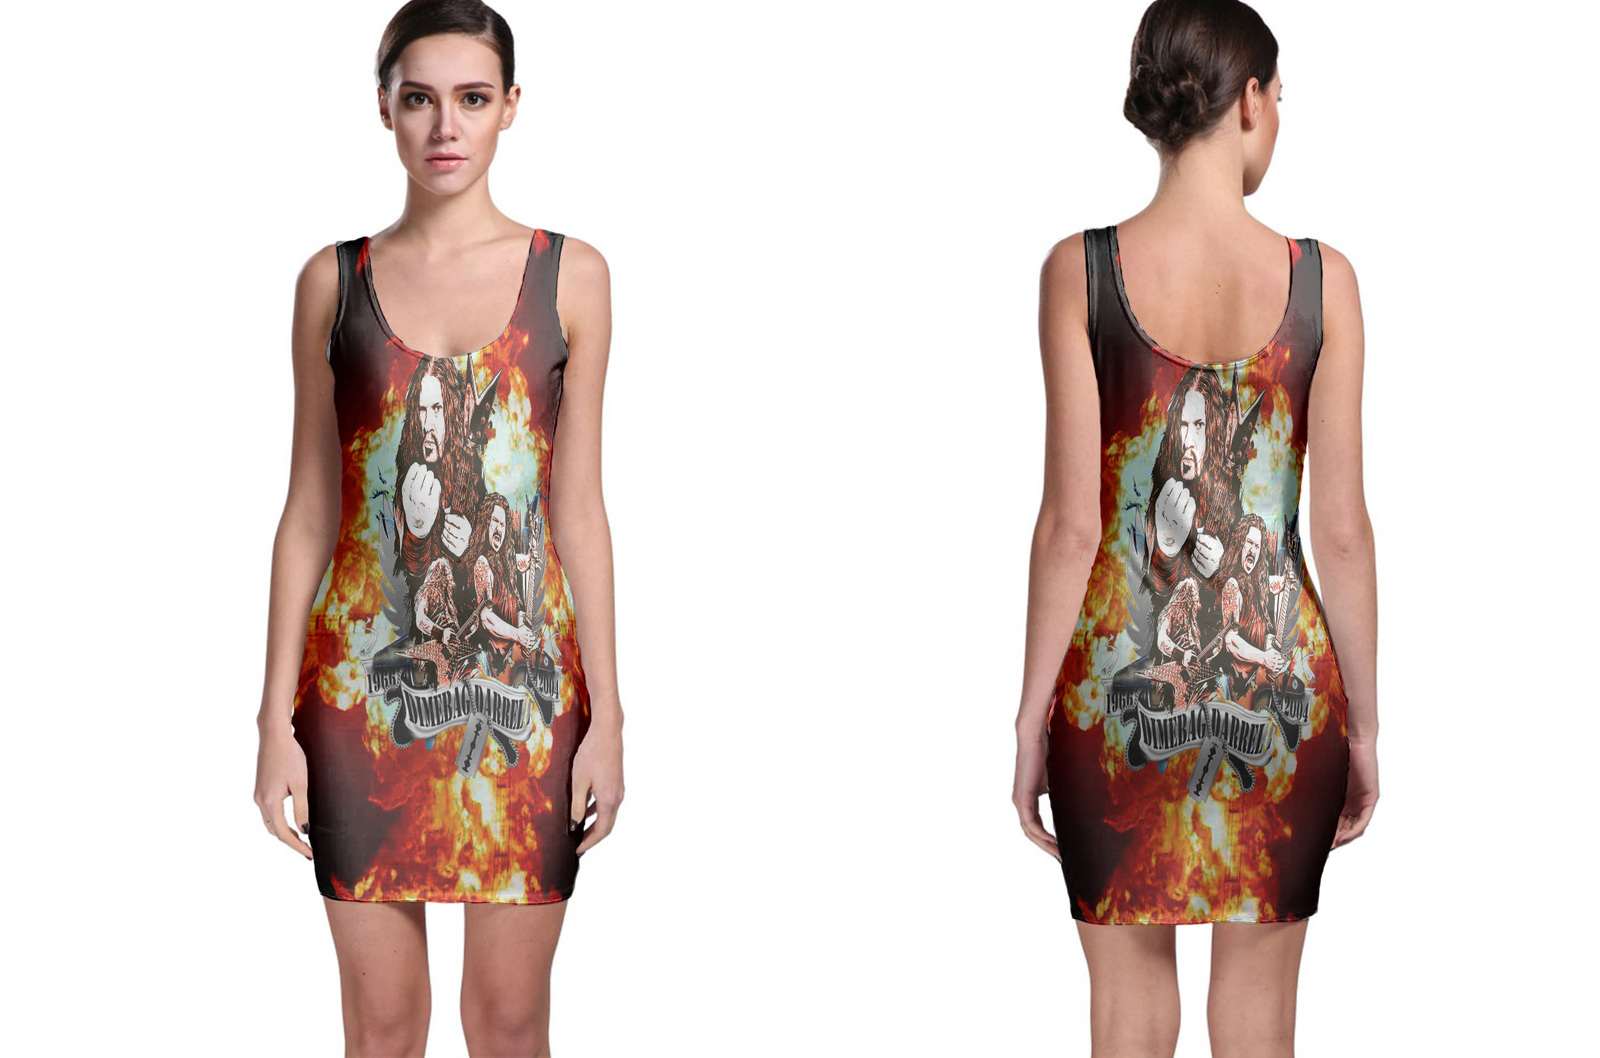 Dimebag Darrell Tribute  RIP METAL GUITARIST Bodycon Dress